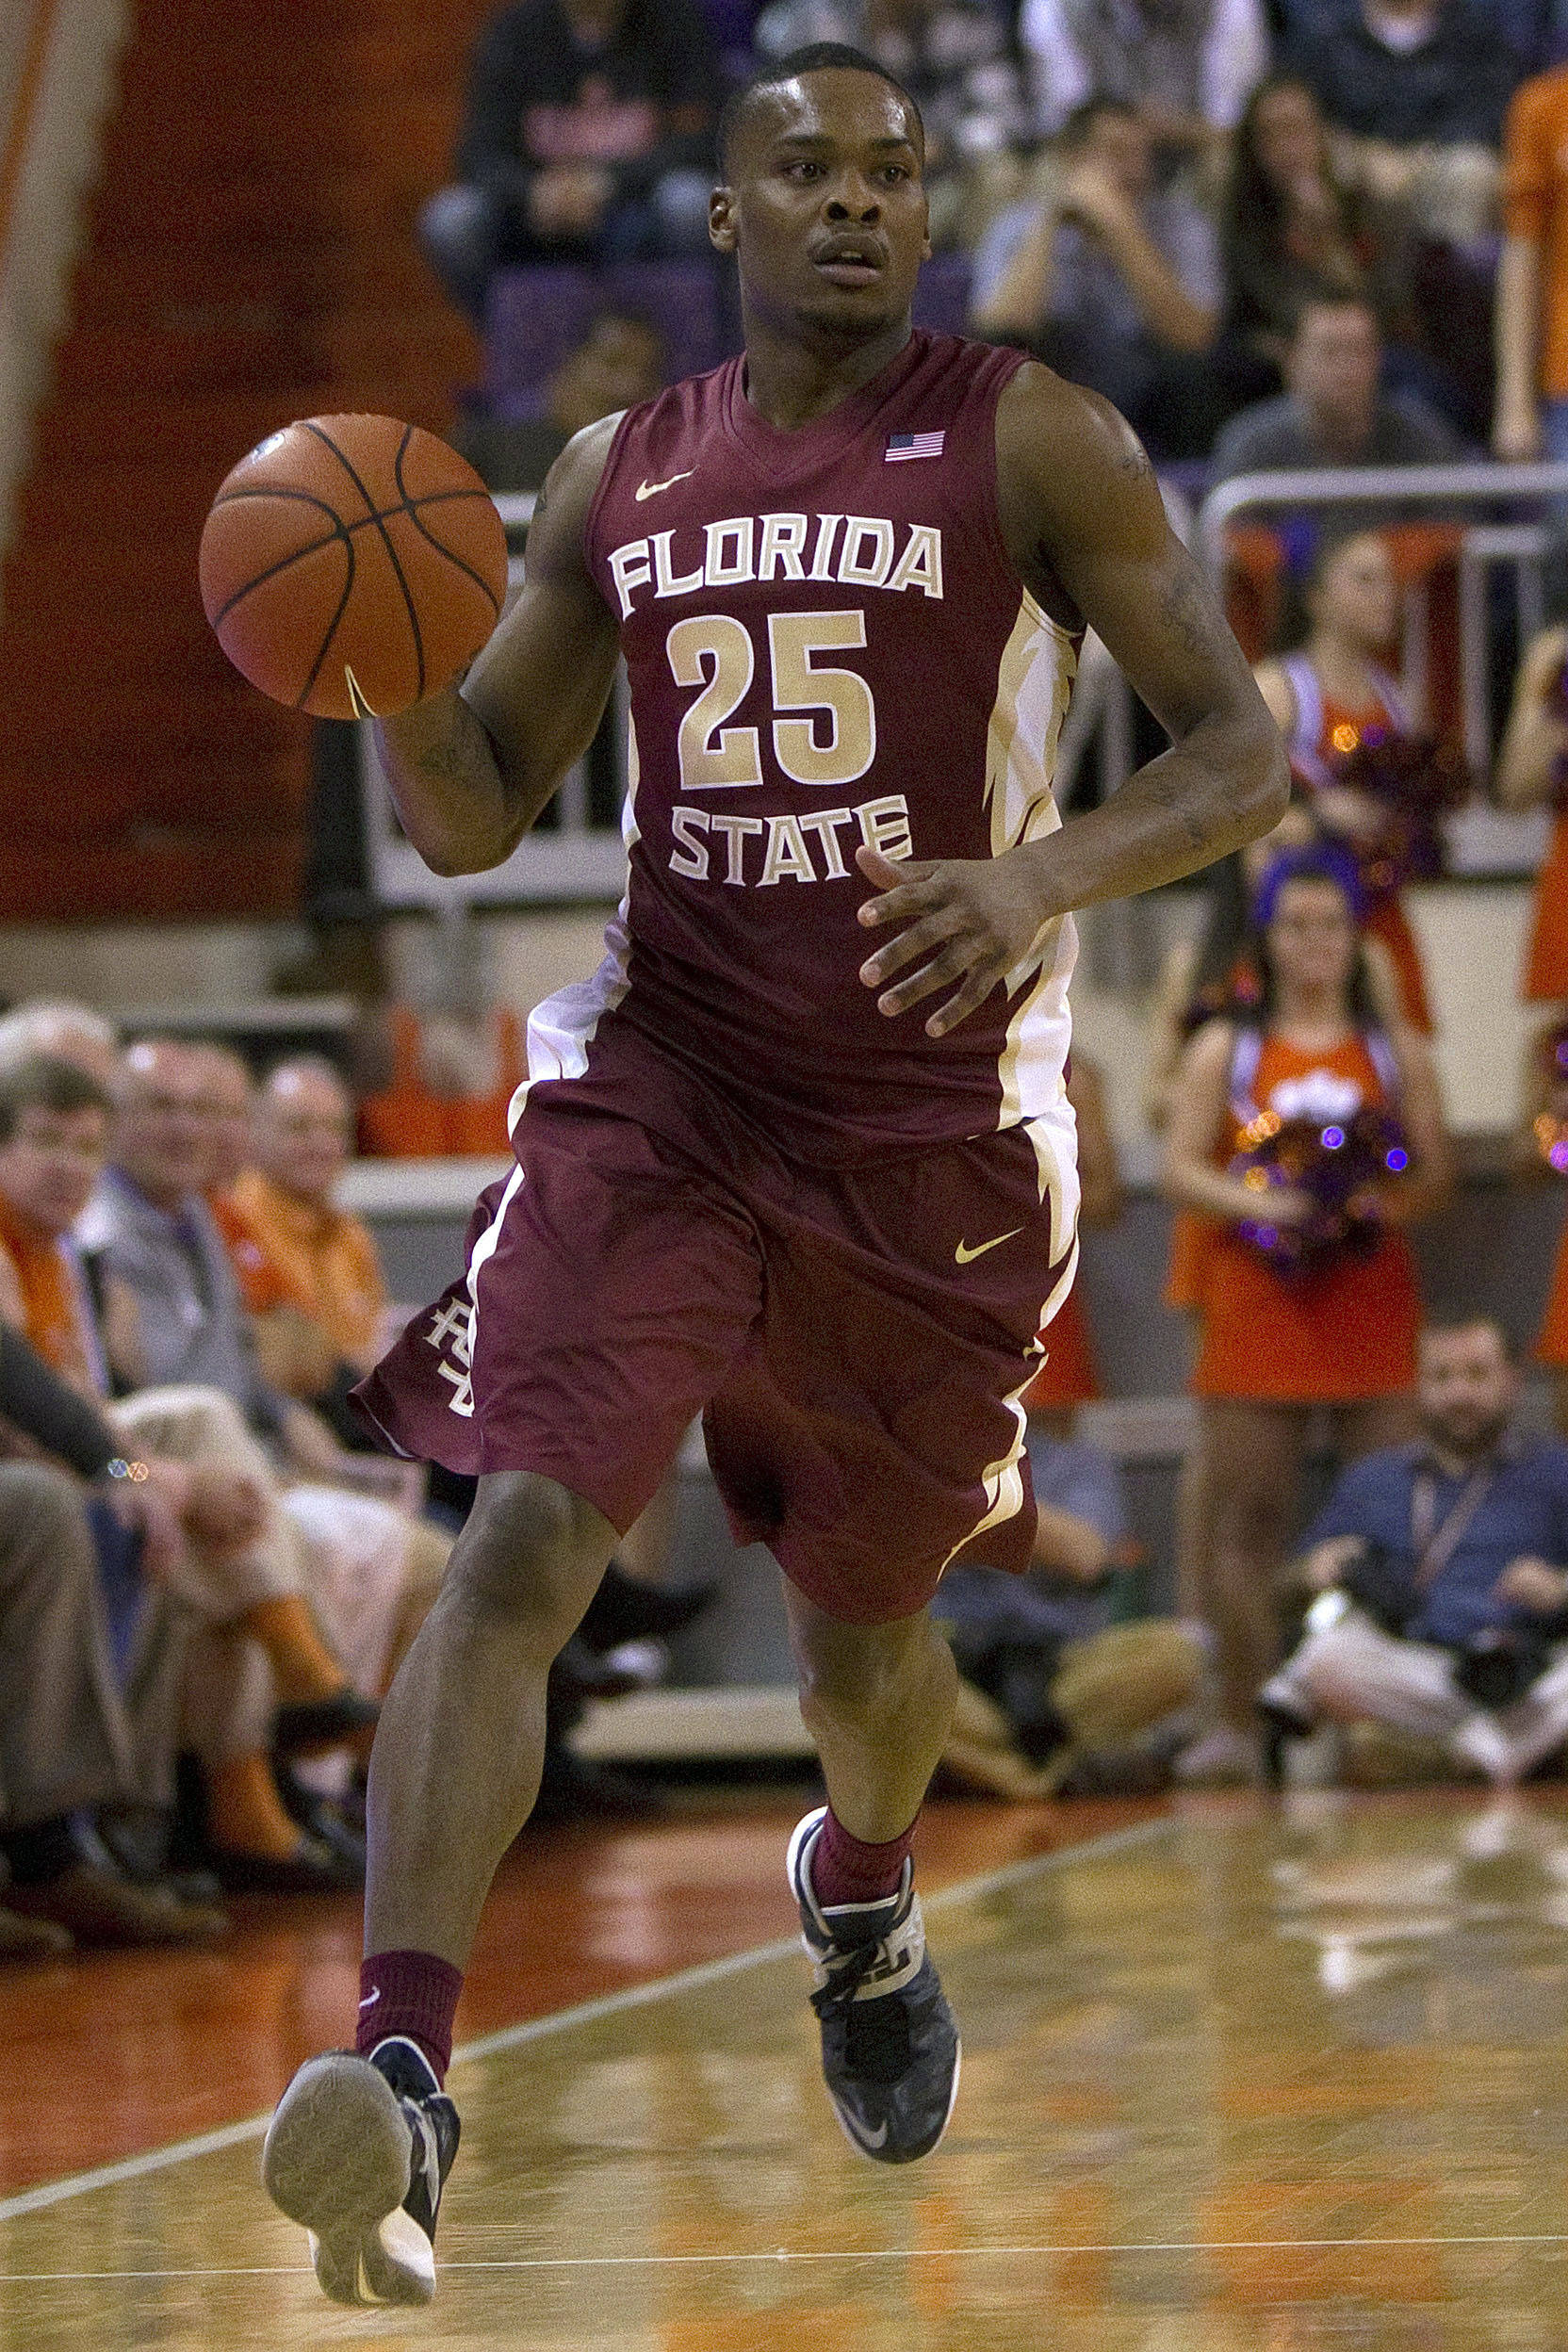 Jan 9, 2014; Clemson, SC, USA; Florida State Seminoles guard Aaron Thomas (25) on a fast break during the first half against the Clemson Tigers at J.C. Littlejohn Coliseum. Mandatory Credit: Joshua S. Kelly-USA TODAY Sports